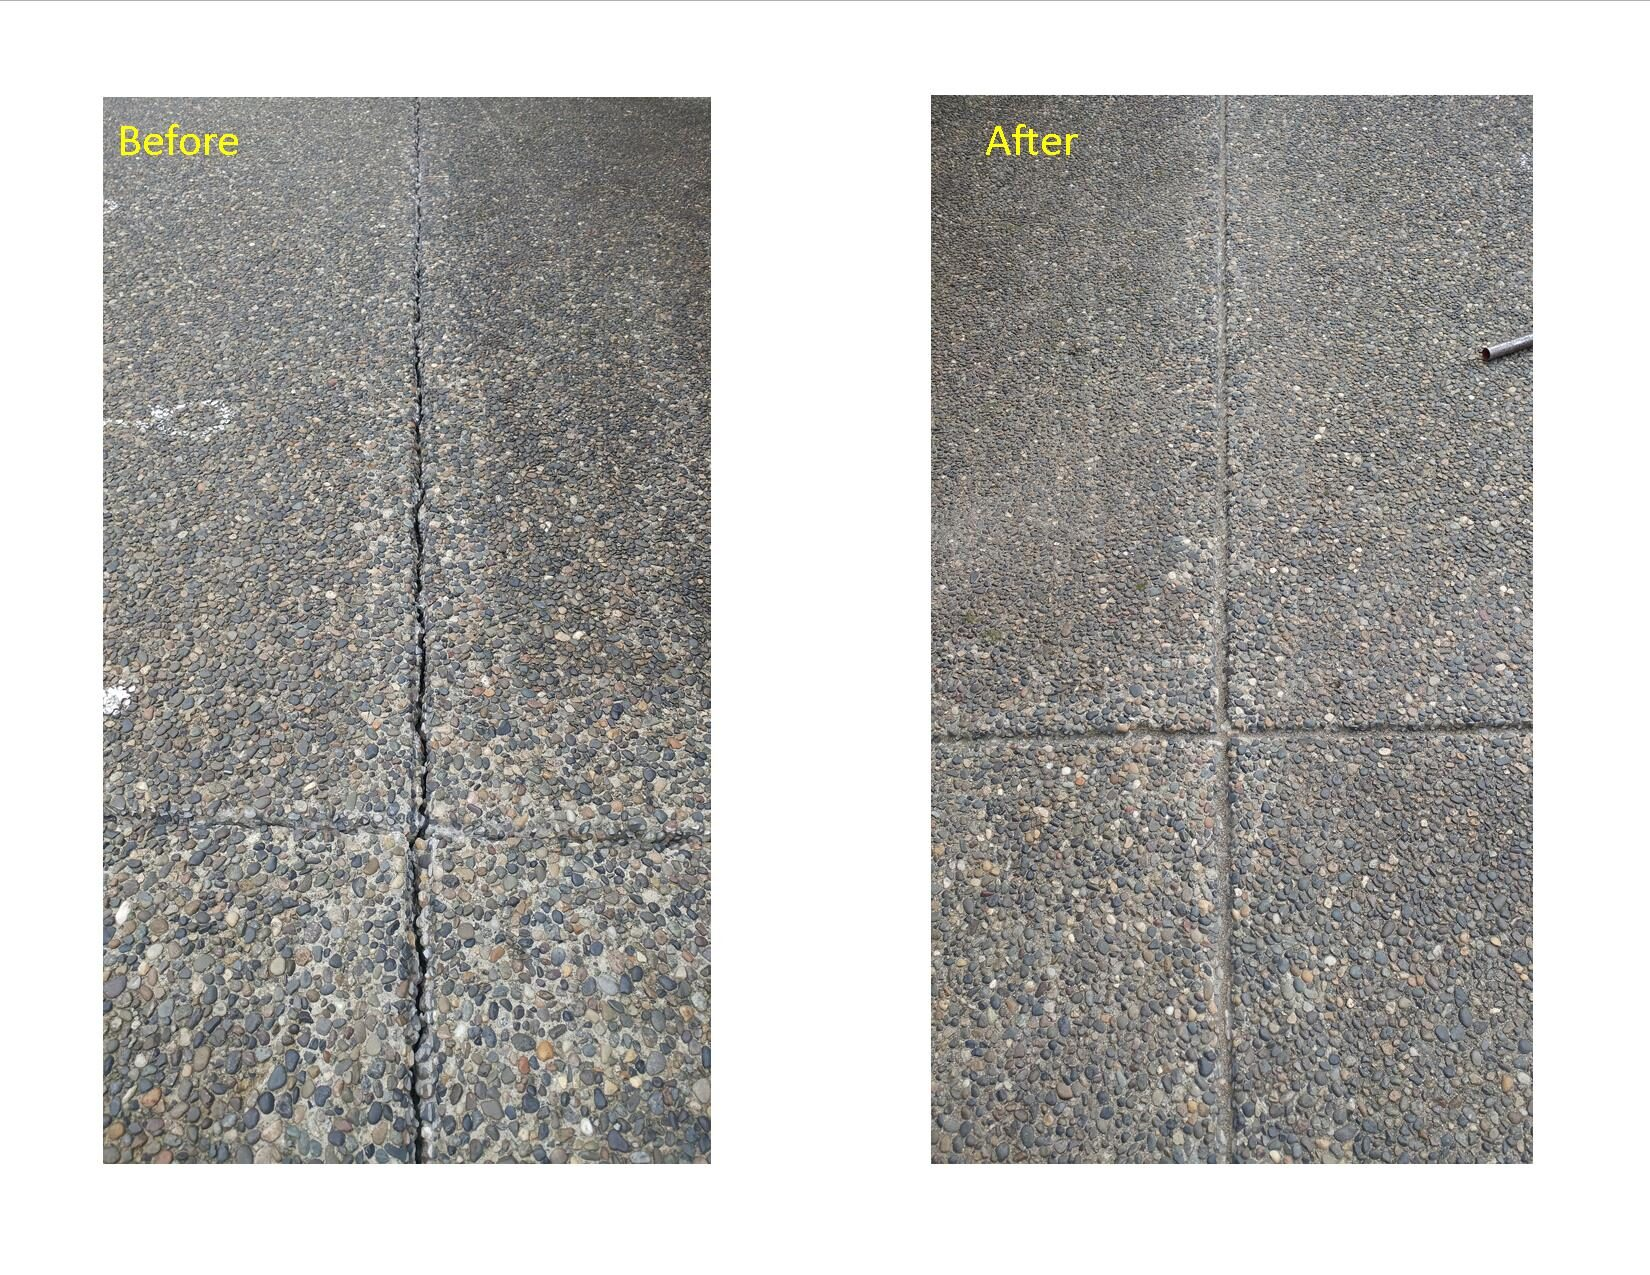 Concrete crack repair before and after